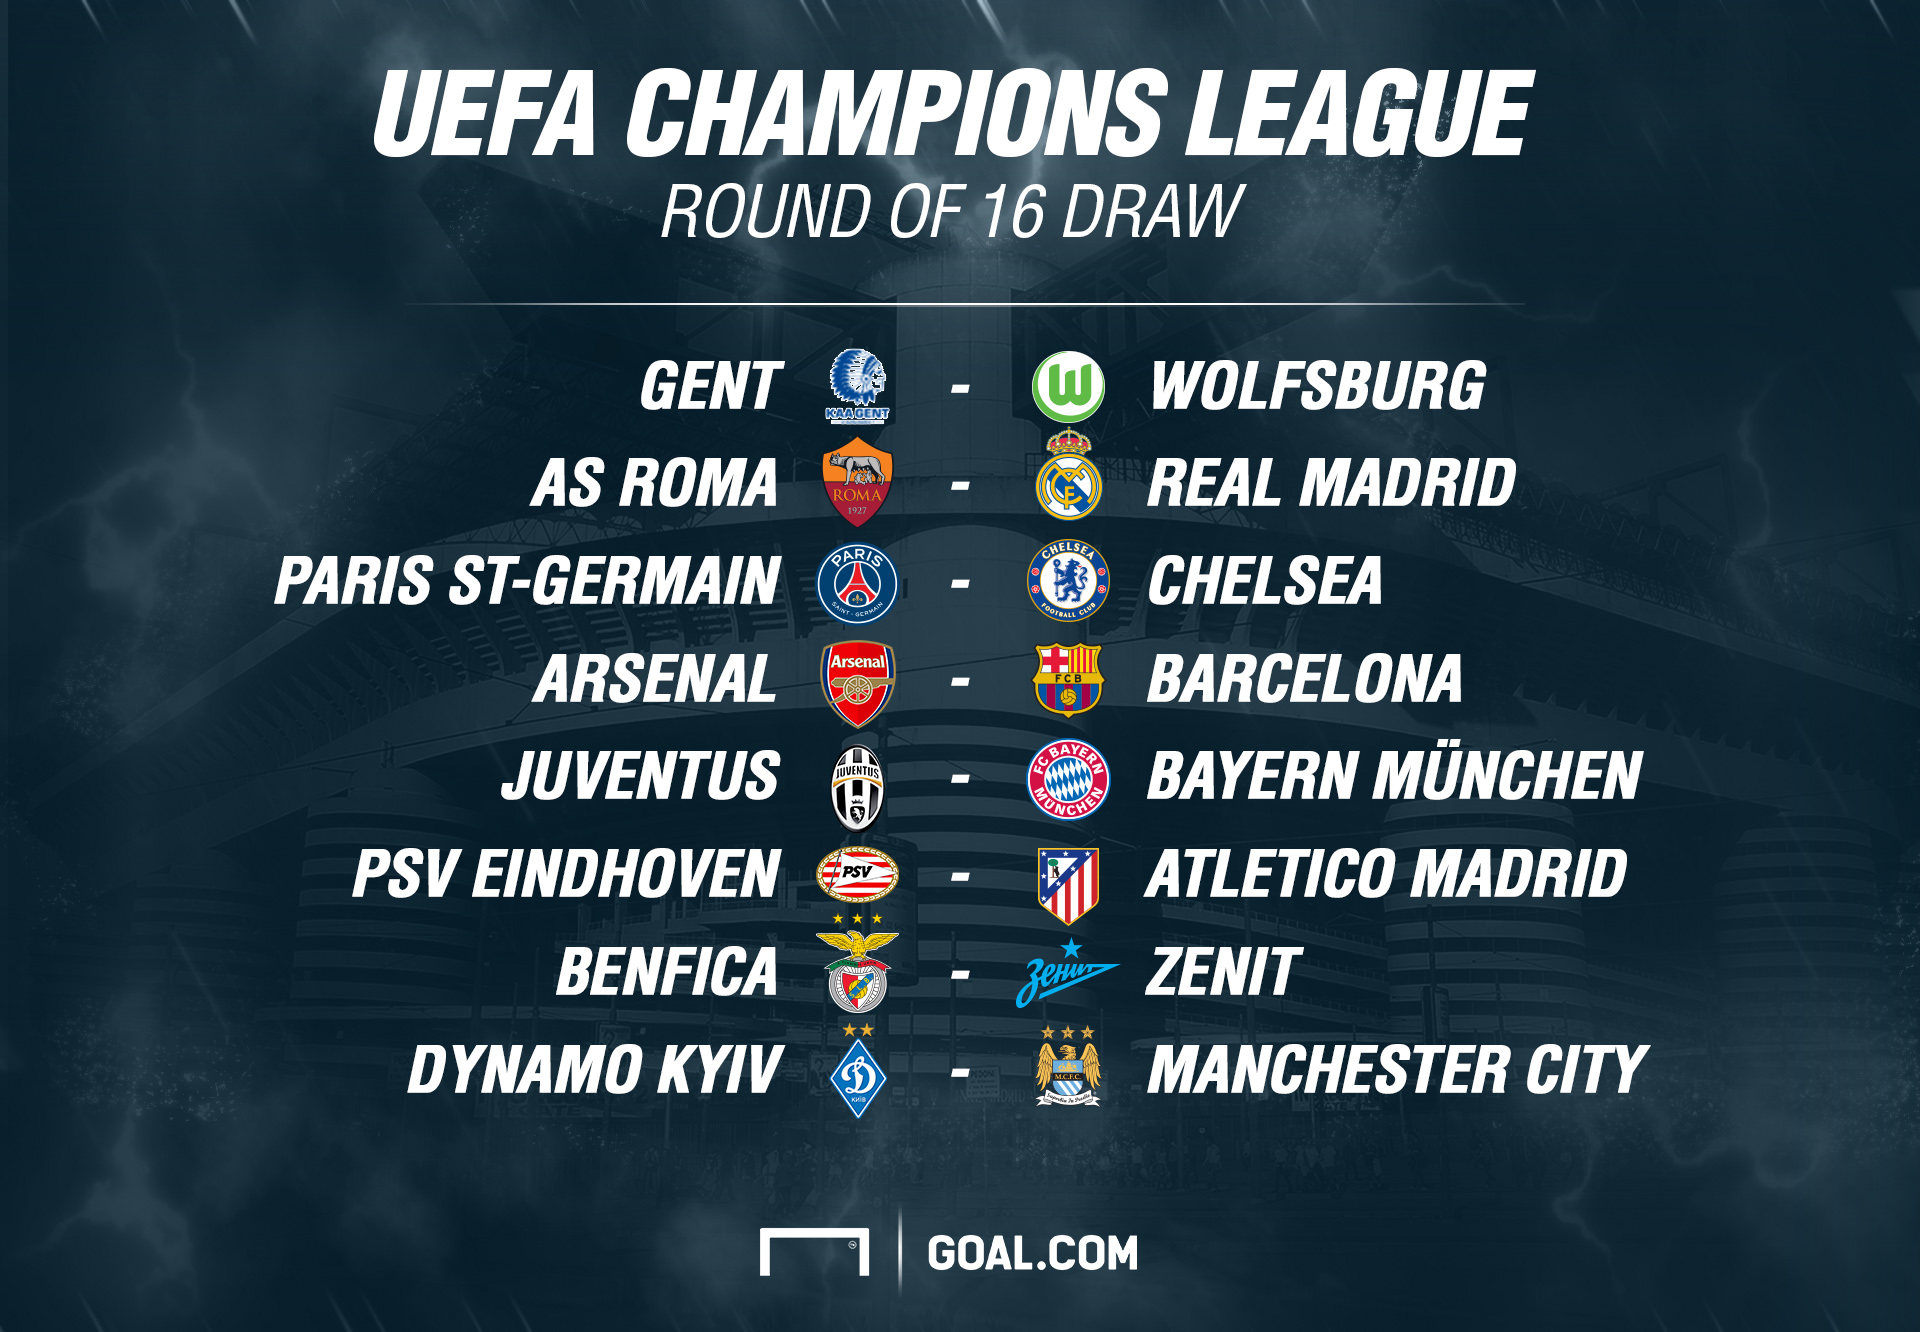 Champions league last 16 draw arsenal to face barcelona chelsea meet